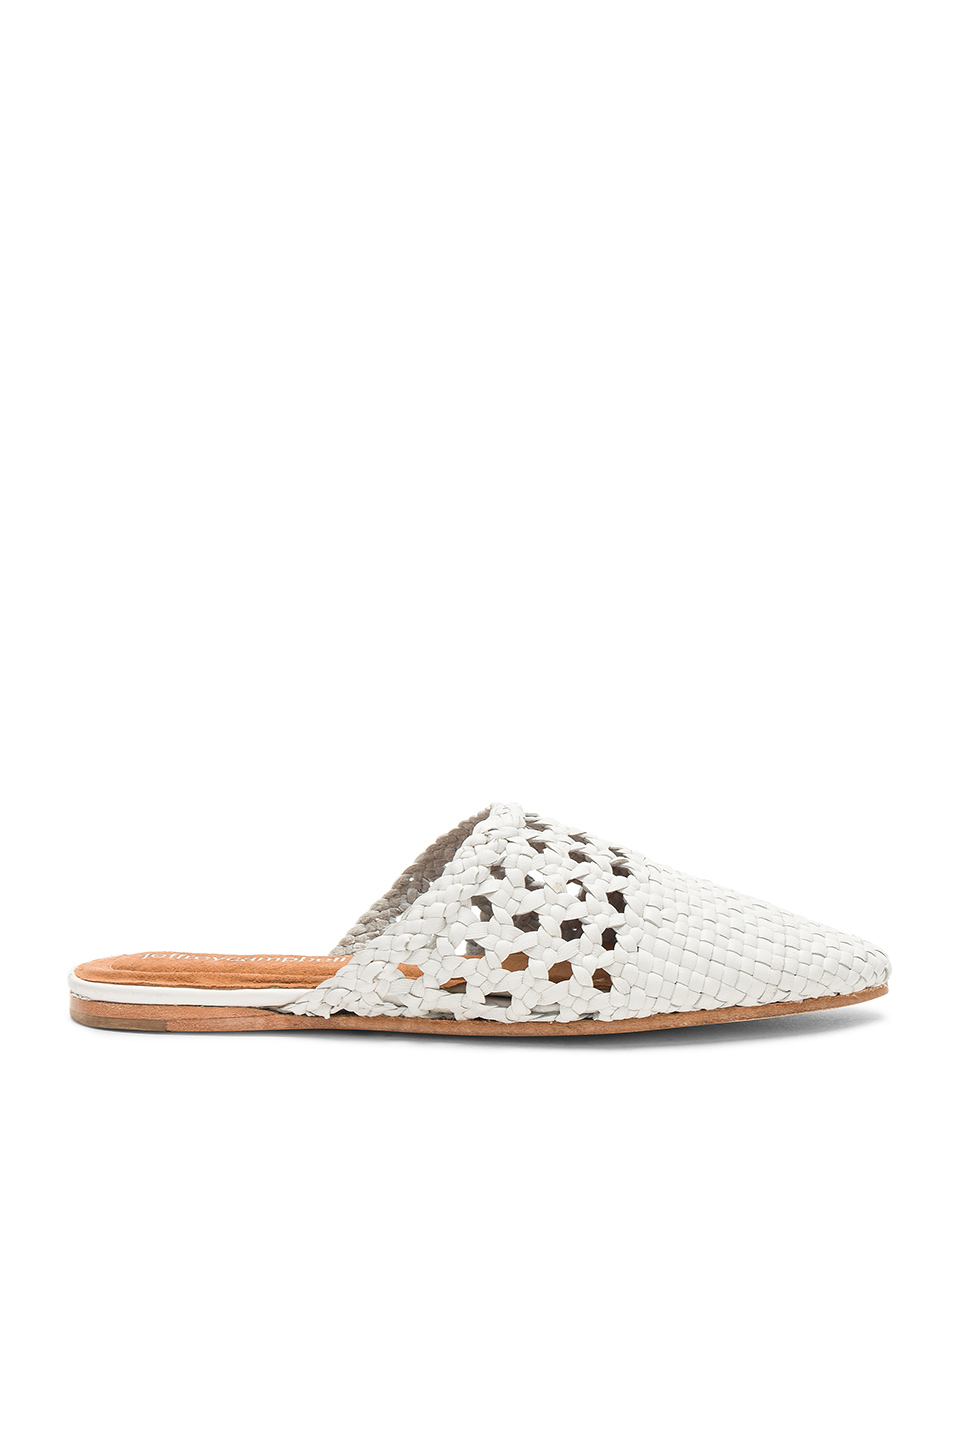 Jeffrey Campbell Atrata Flat in White